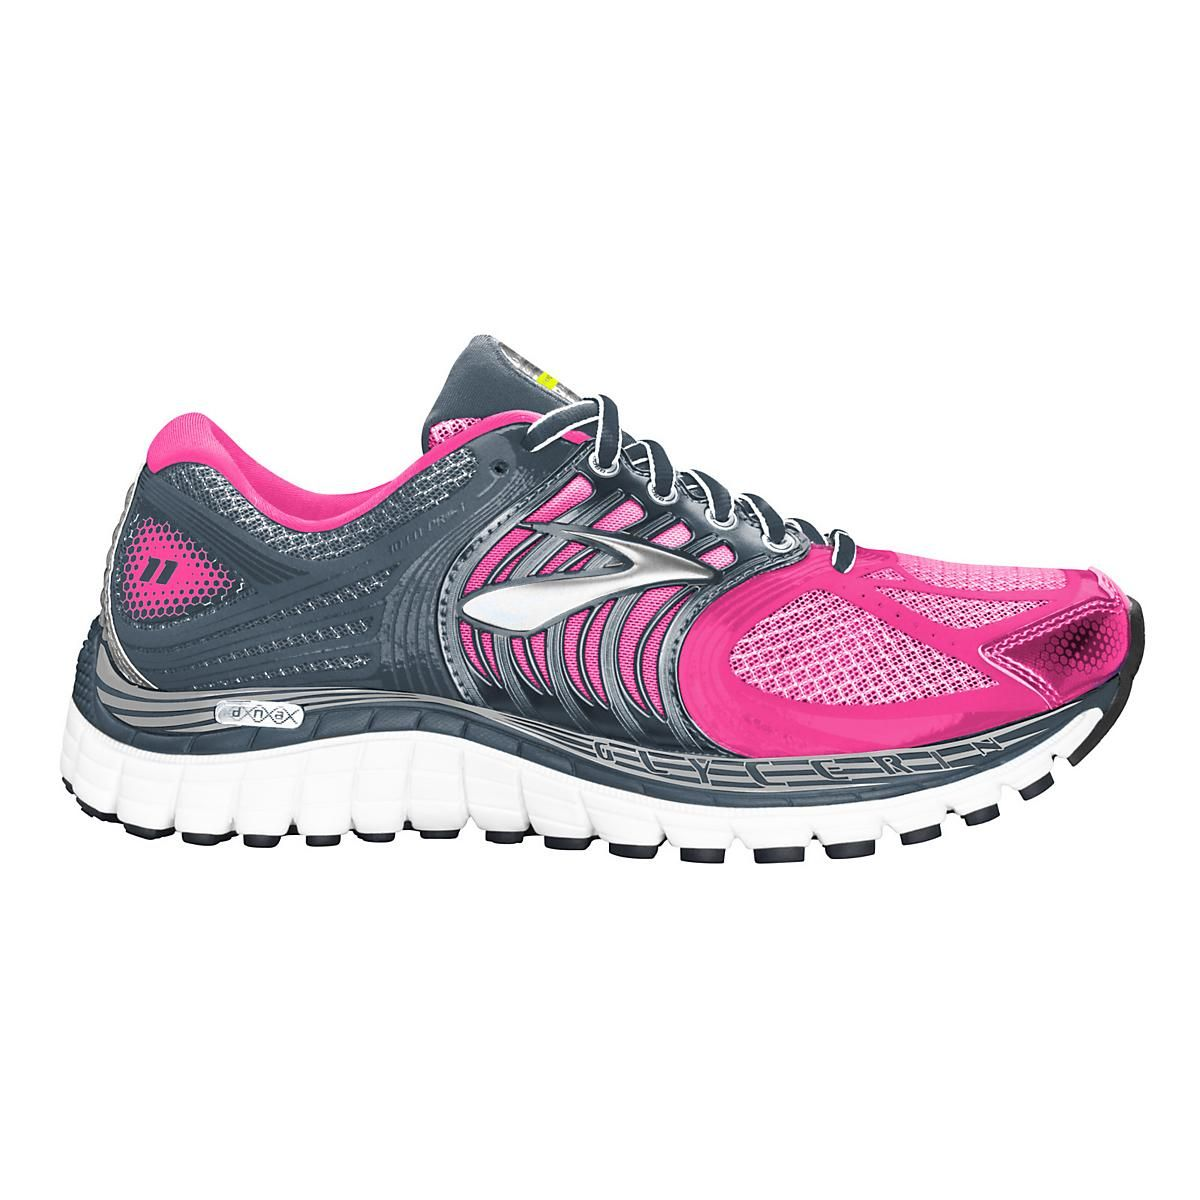 Womens running shoes, Workout shoes